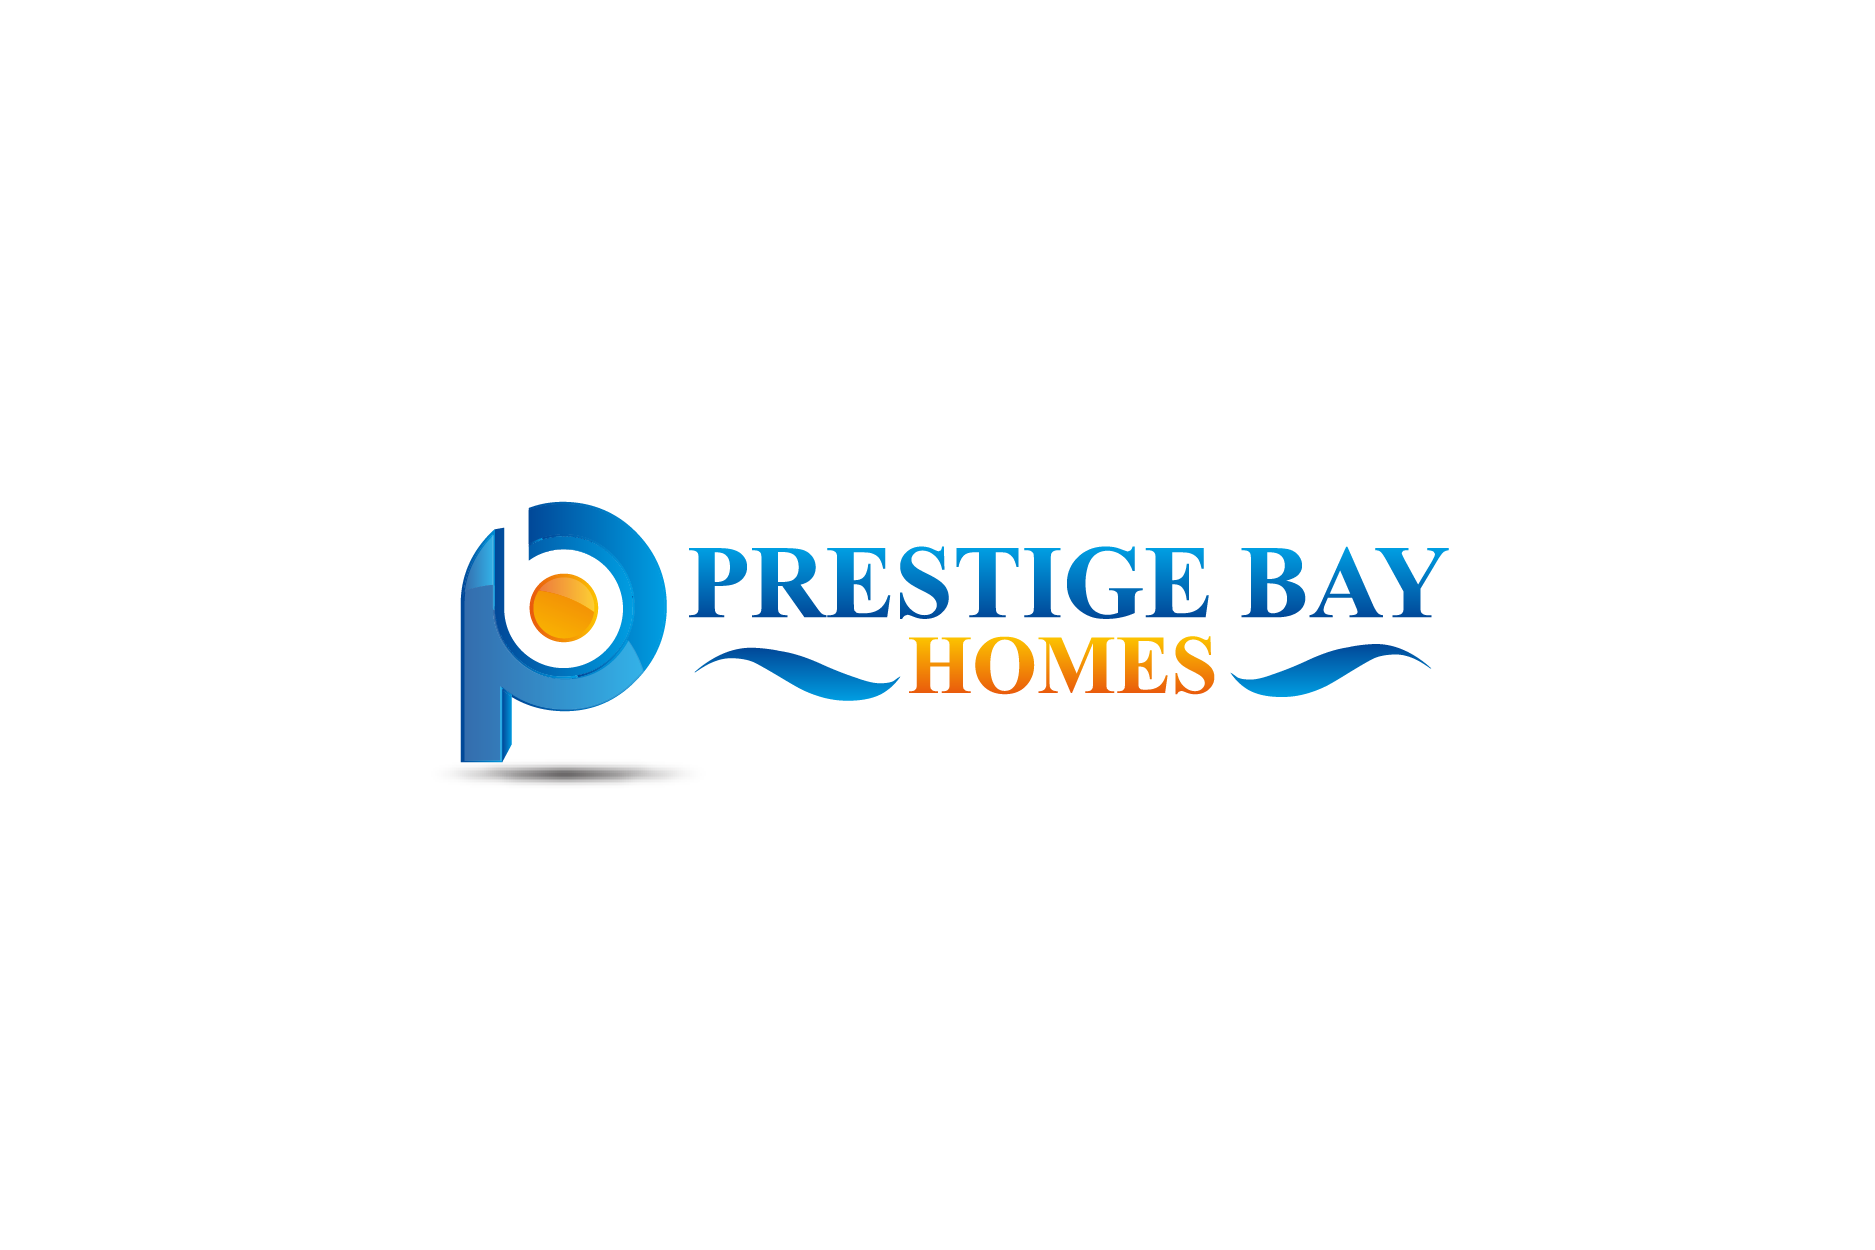 Logo Design by Private User - Entry No. 36 in the Logo Design Contest Imaginative Logo Design for Prestige Bay Homes.